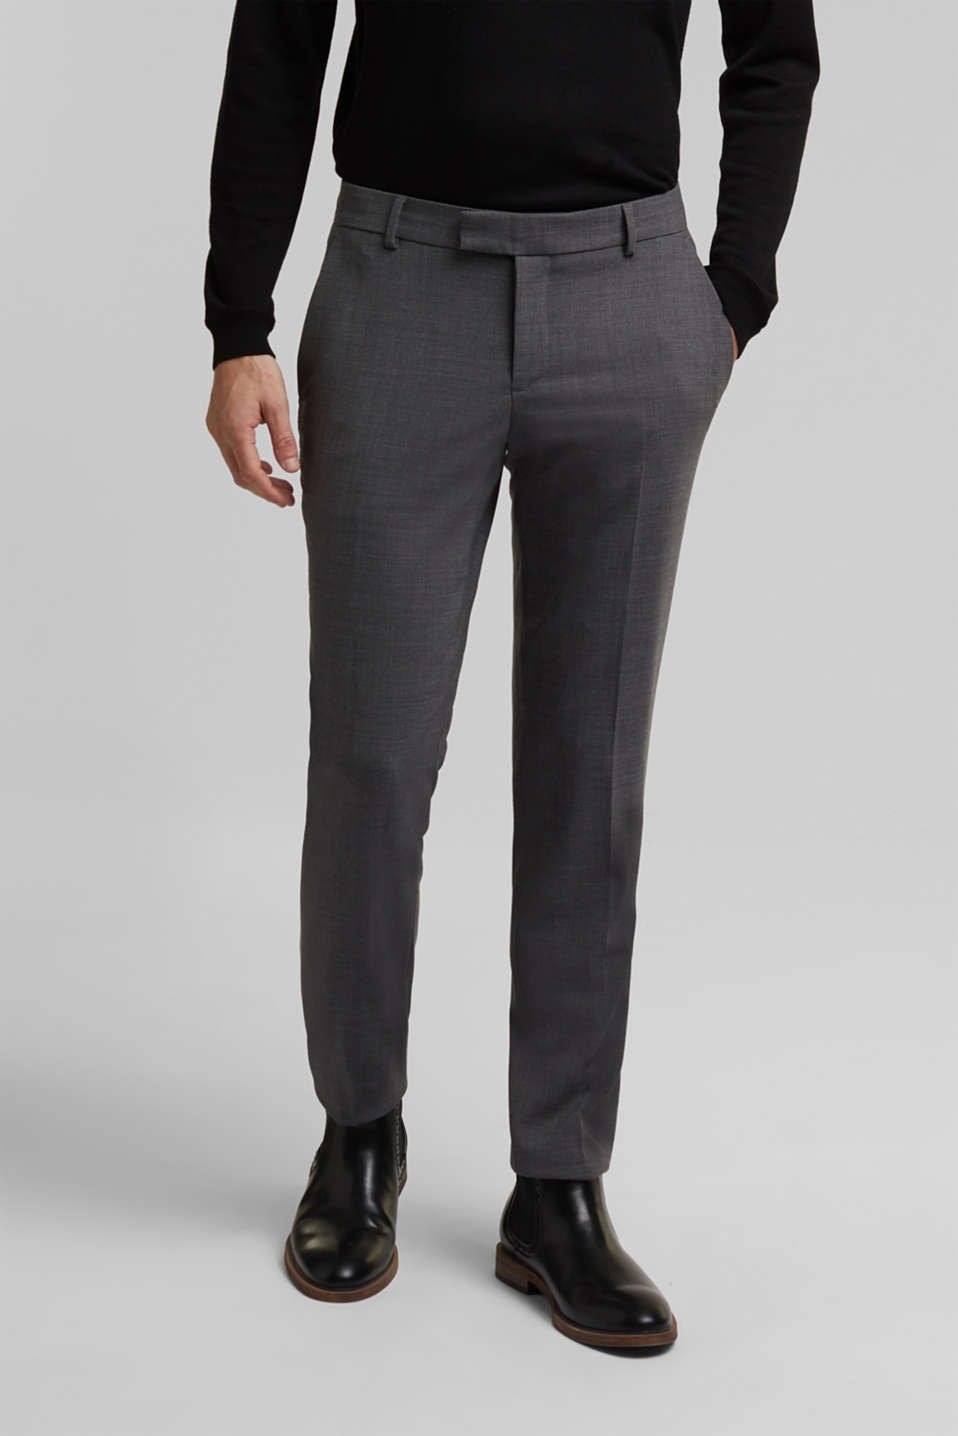 ACTIVE SUIT BLACK trousers made of blended wool, DARK GREY 5, detail image number 0